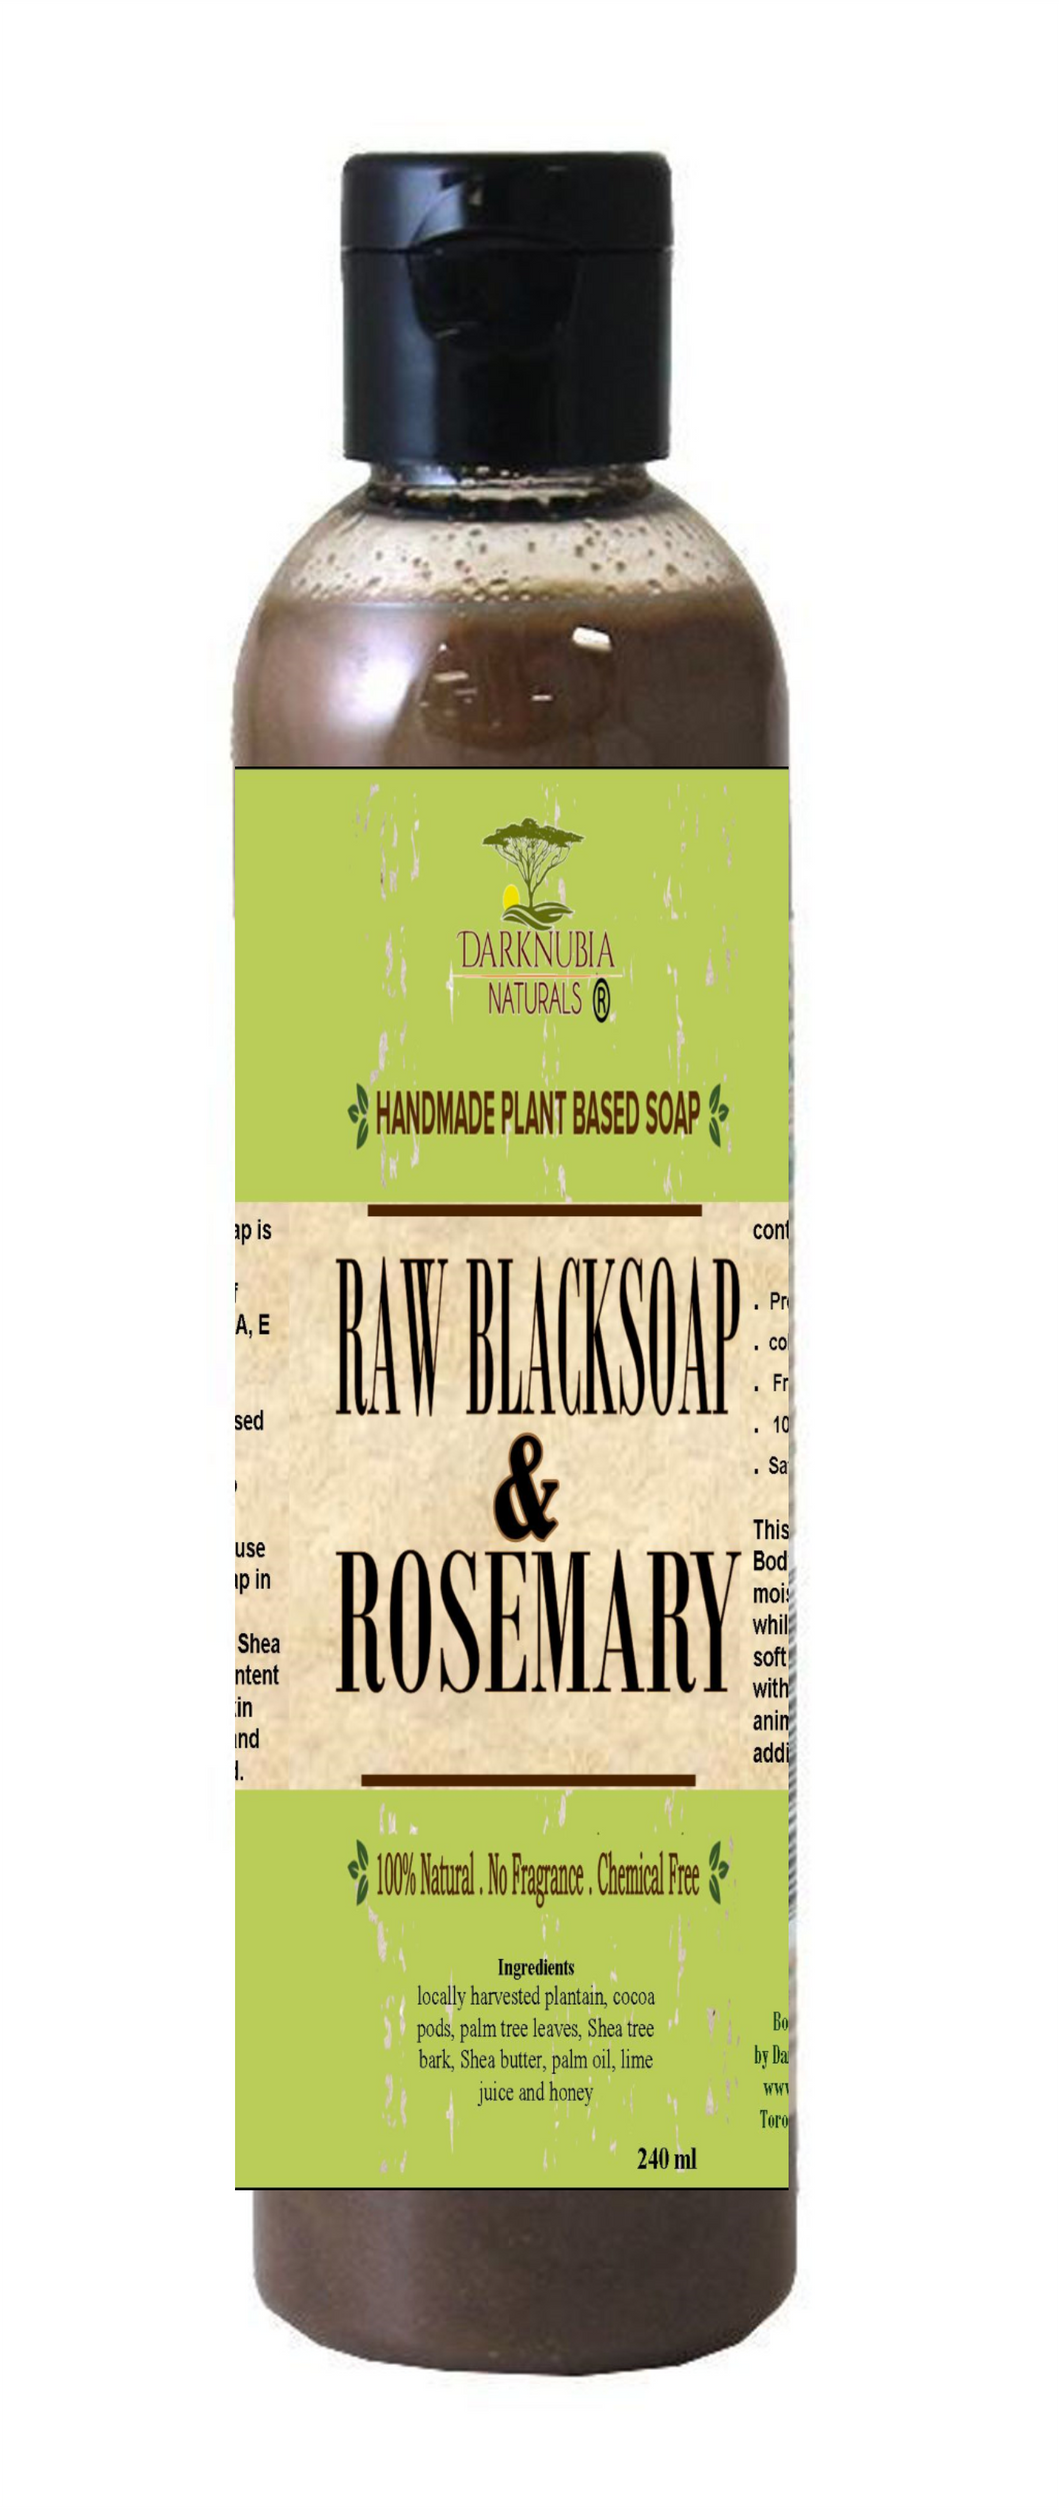 RAW BLACKSOAP WITH ROSEMARY BODY WASH (50)